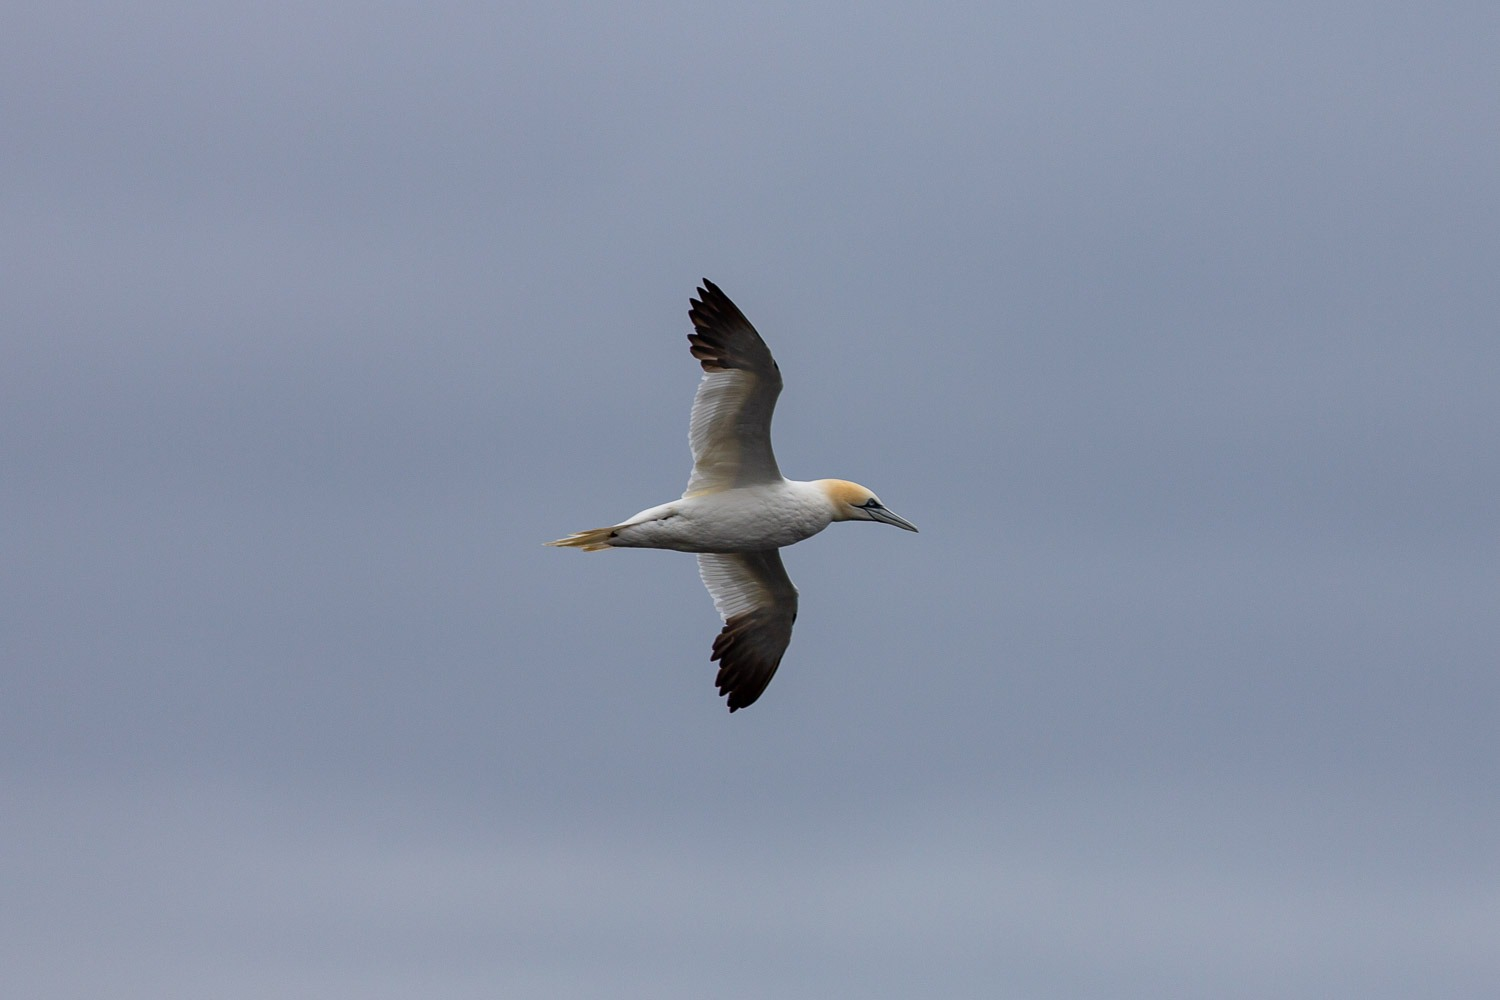 a gannet flying over water